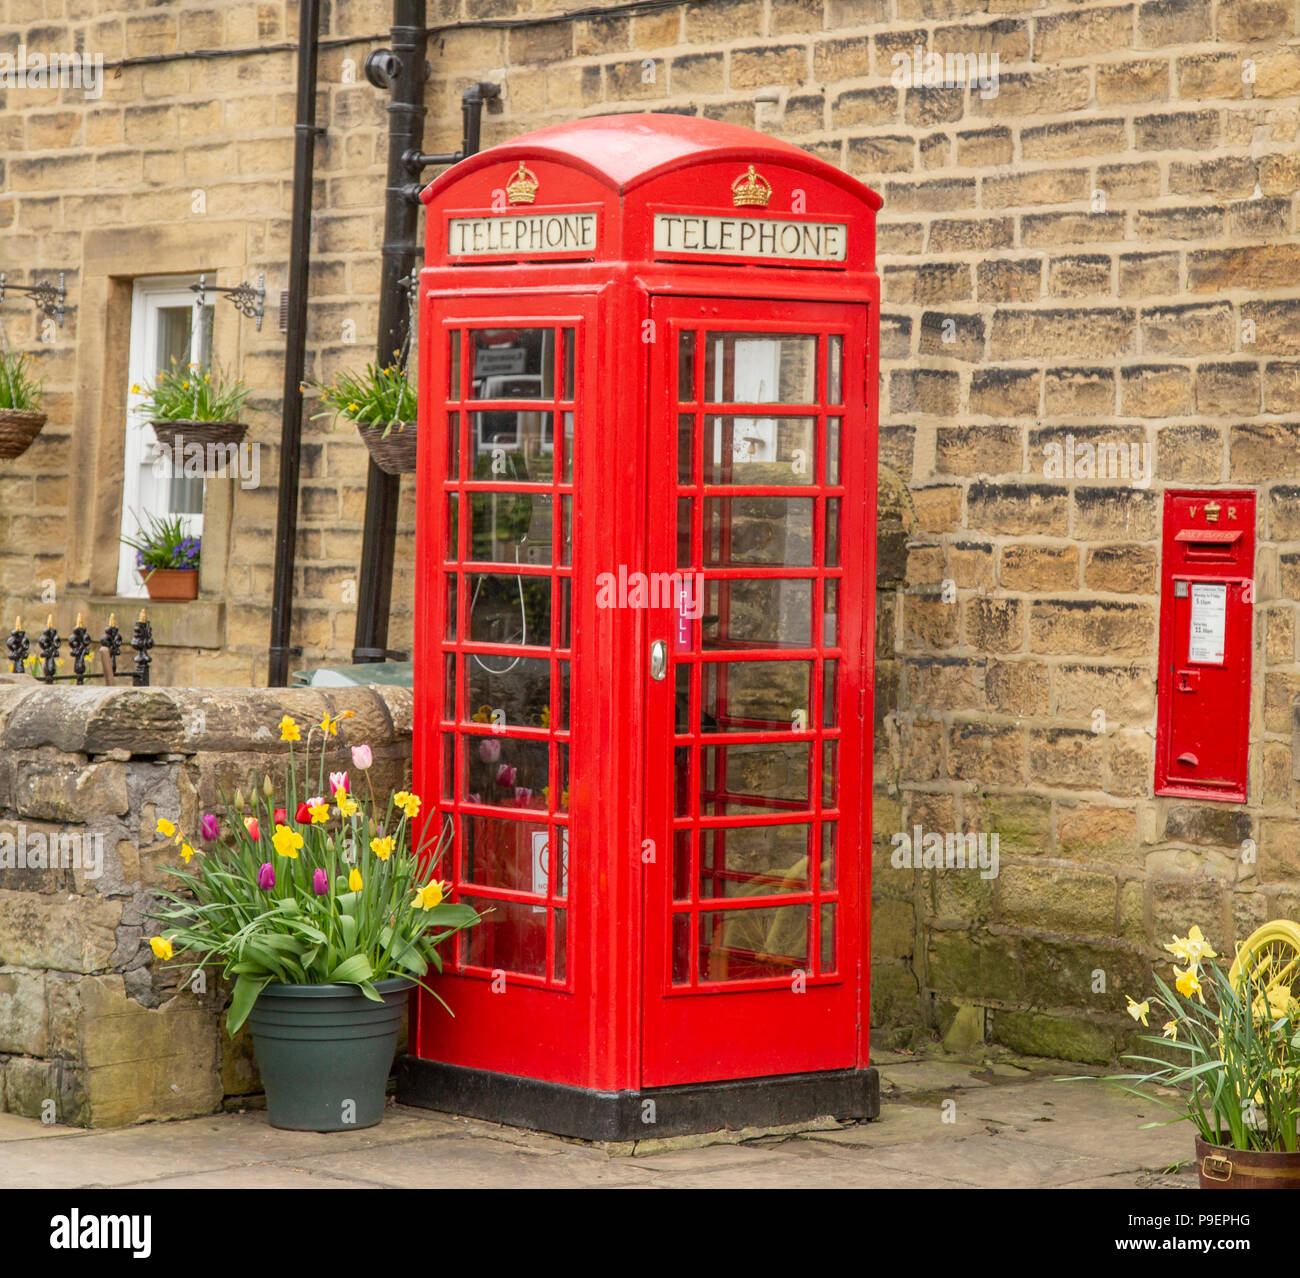 A K6 red telephone box (UK) and wall postbox in Esholt, West Yorkshire, England. - Stock Image